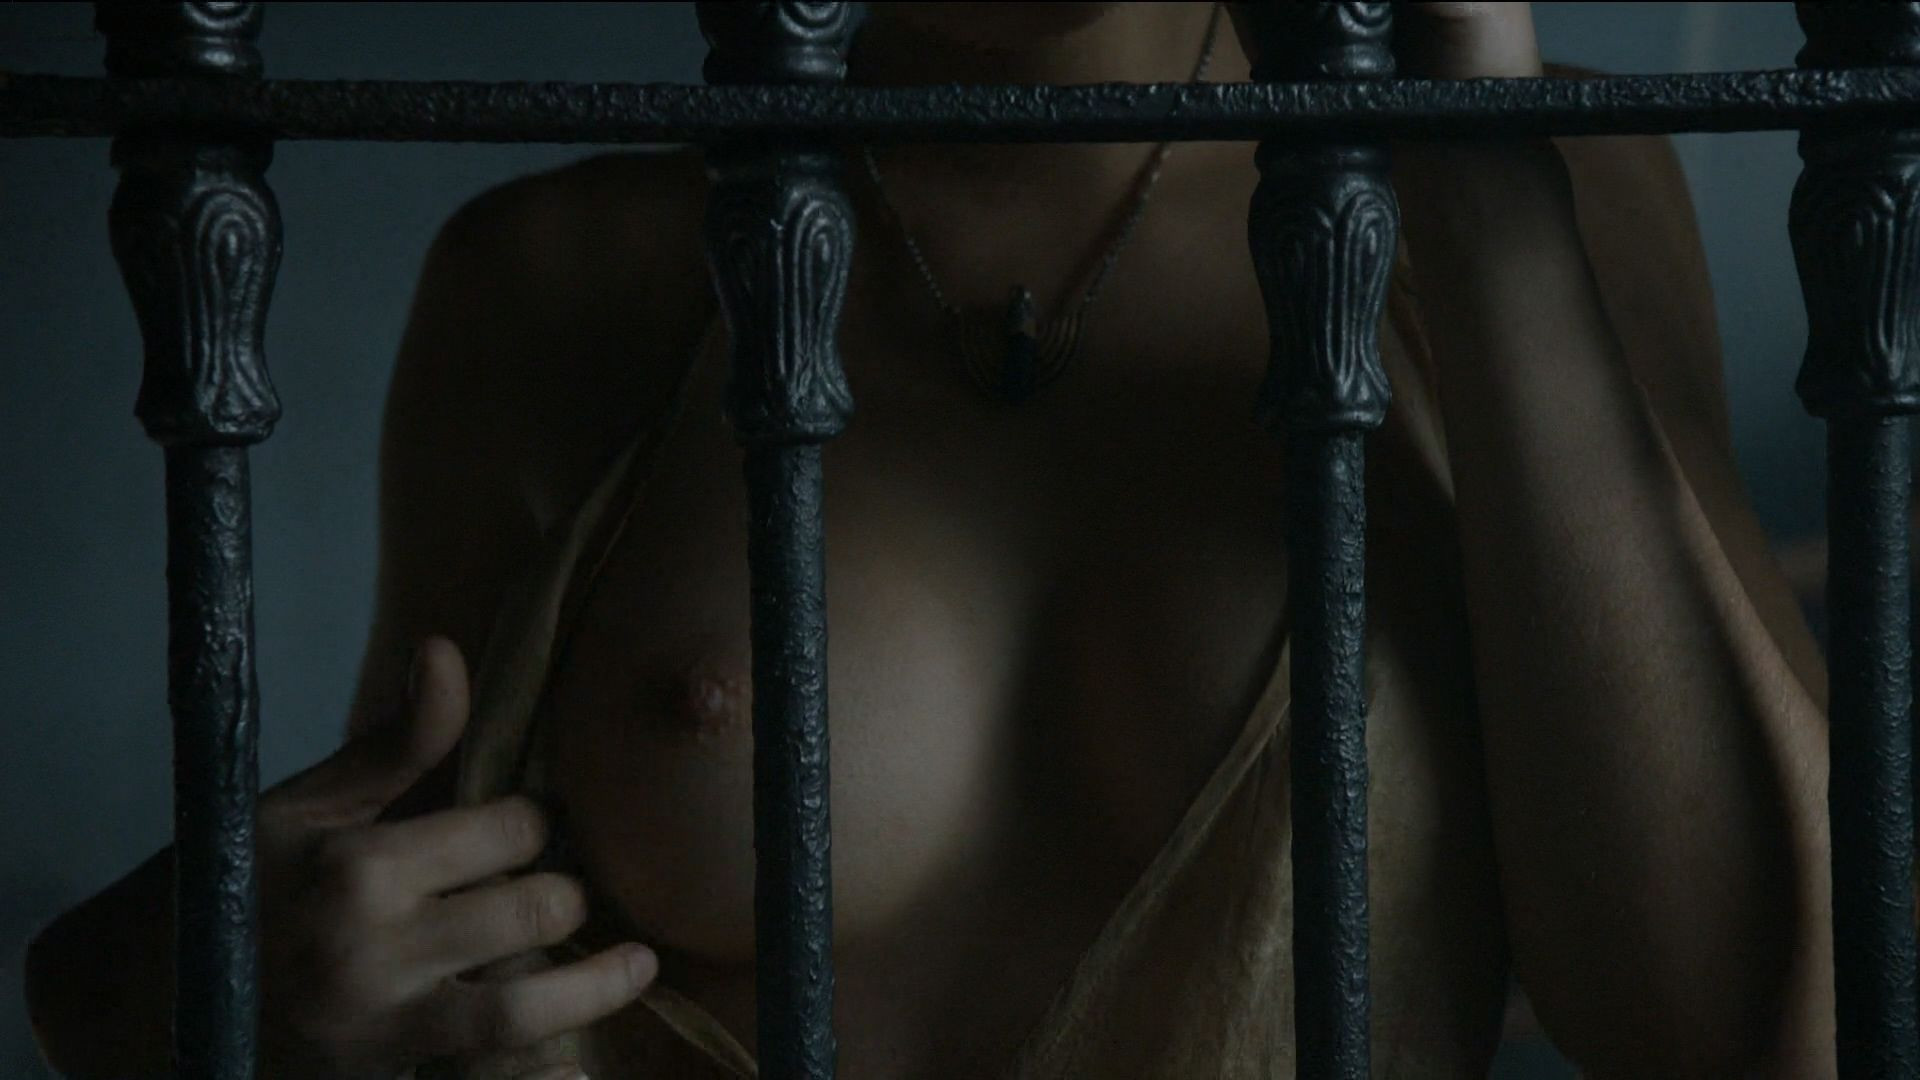 Rosabell Laurenti Sellers Topless 5 TheFappening.nu